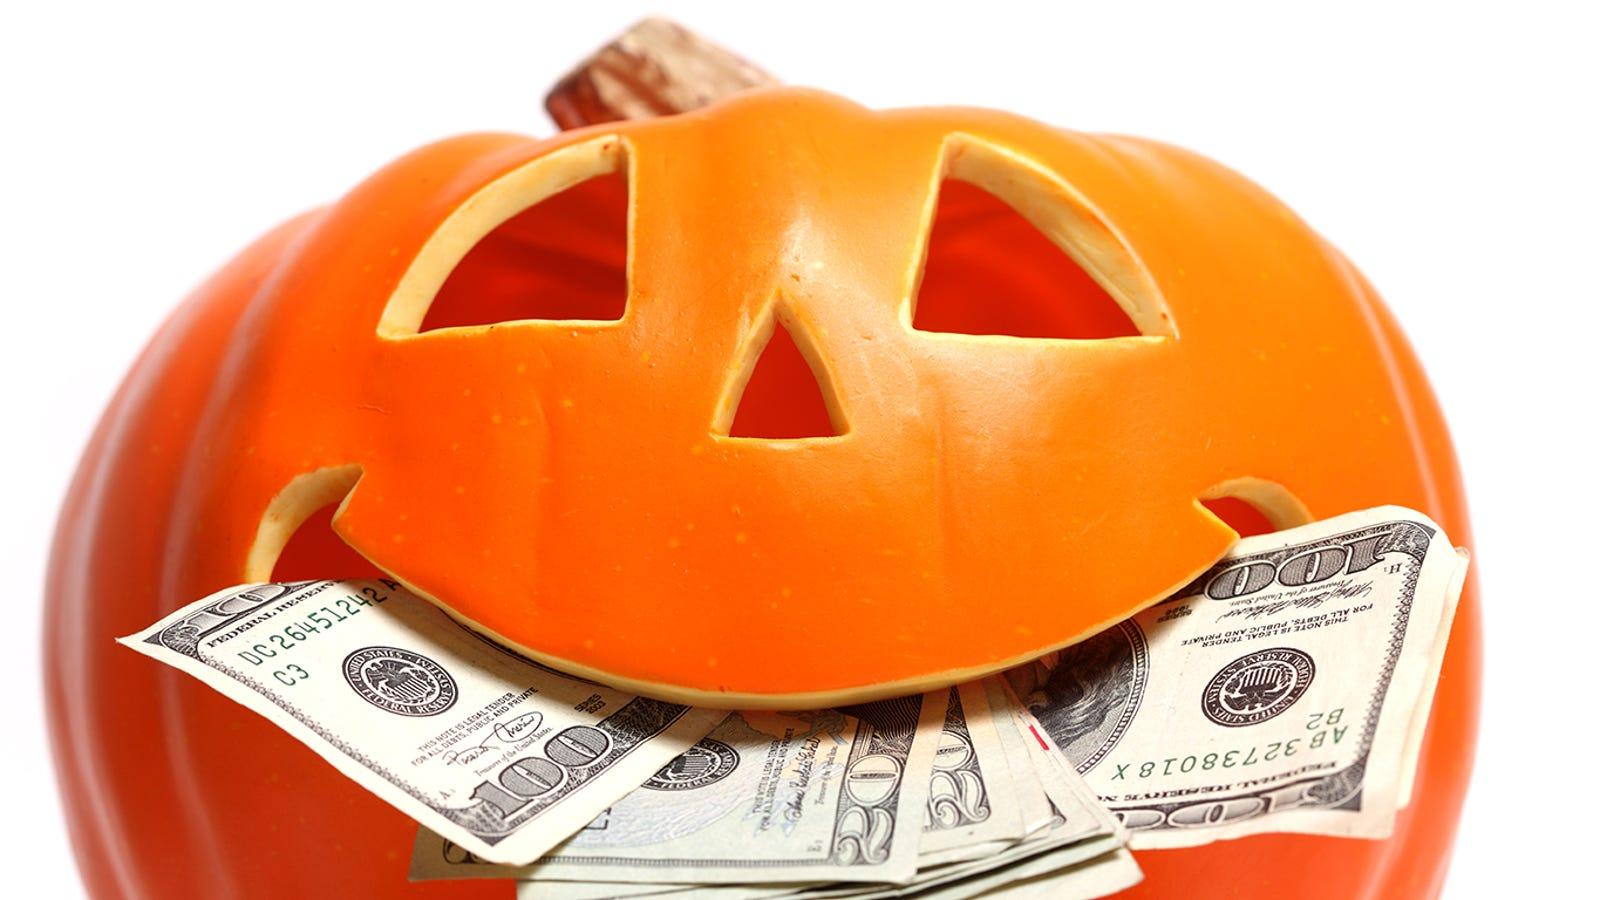 halloween spending: us cities that invest heavily in haunted holiday